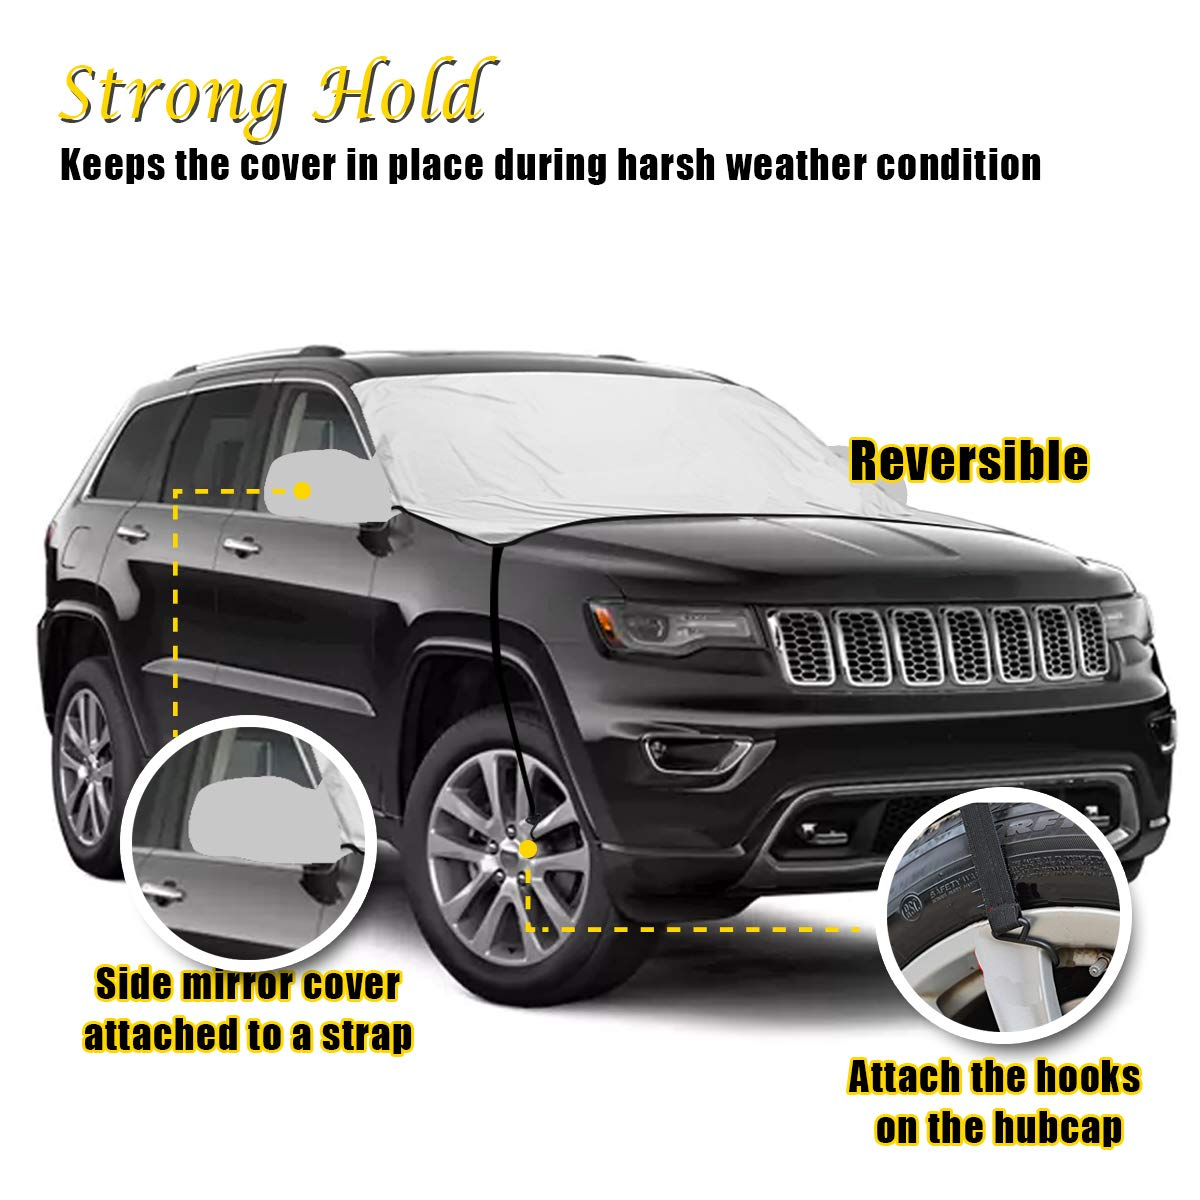 Reversible Exterior All Weather Frost Guard-Waterproof Clean Cover No Scraping VaygWay Car Snow Ice Cover Windshield Frost Ice Snow Protector